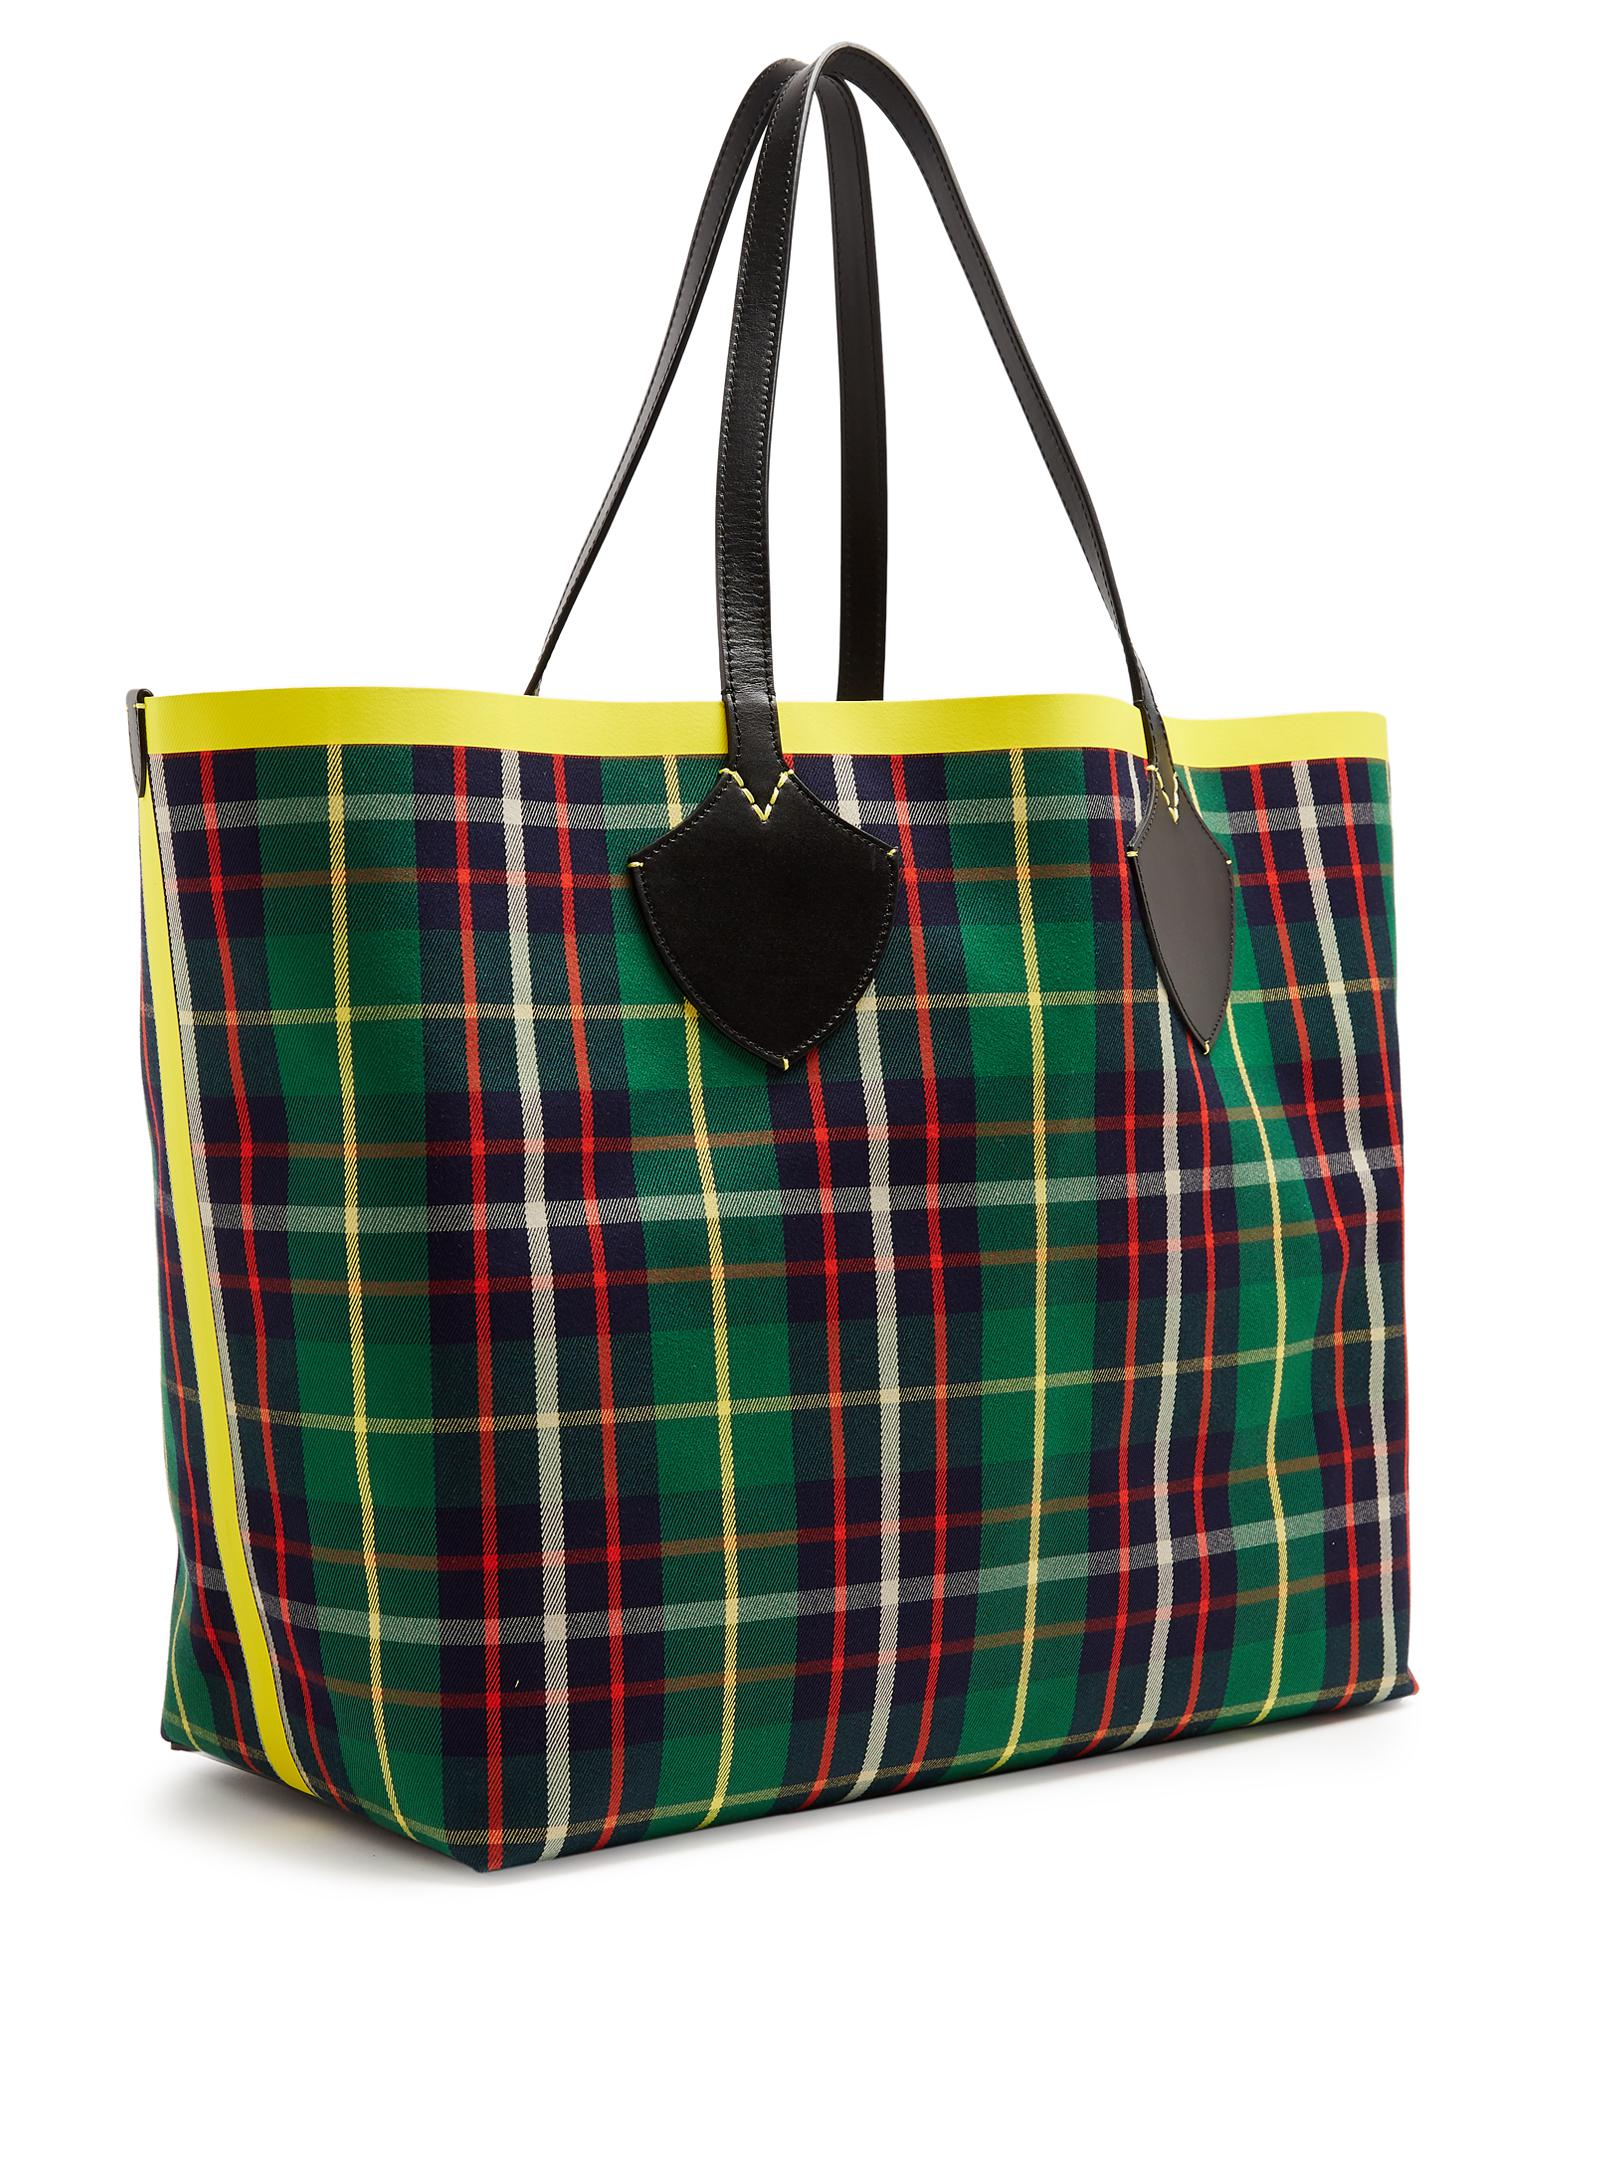 Burberry Leather Tartan Reversible Tote Bag in Green